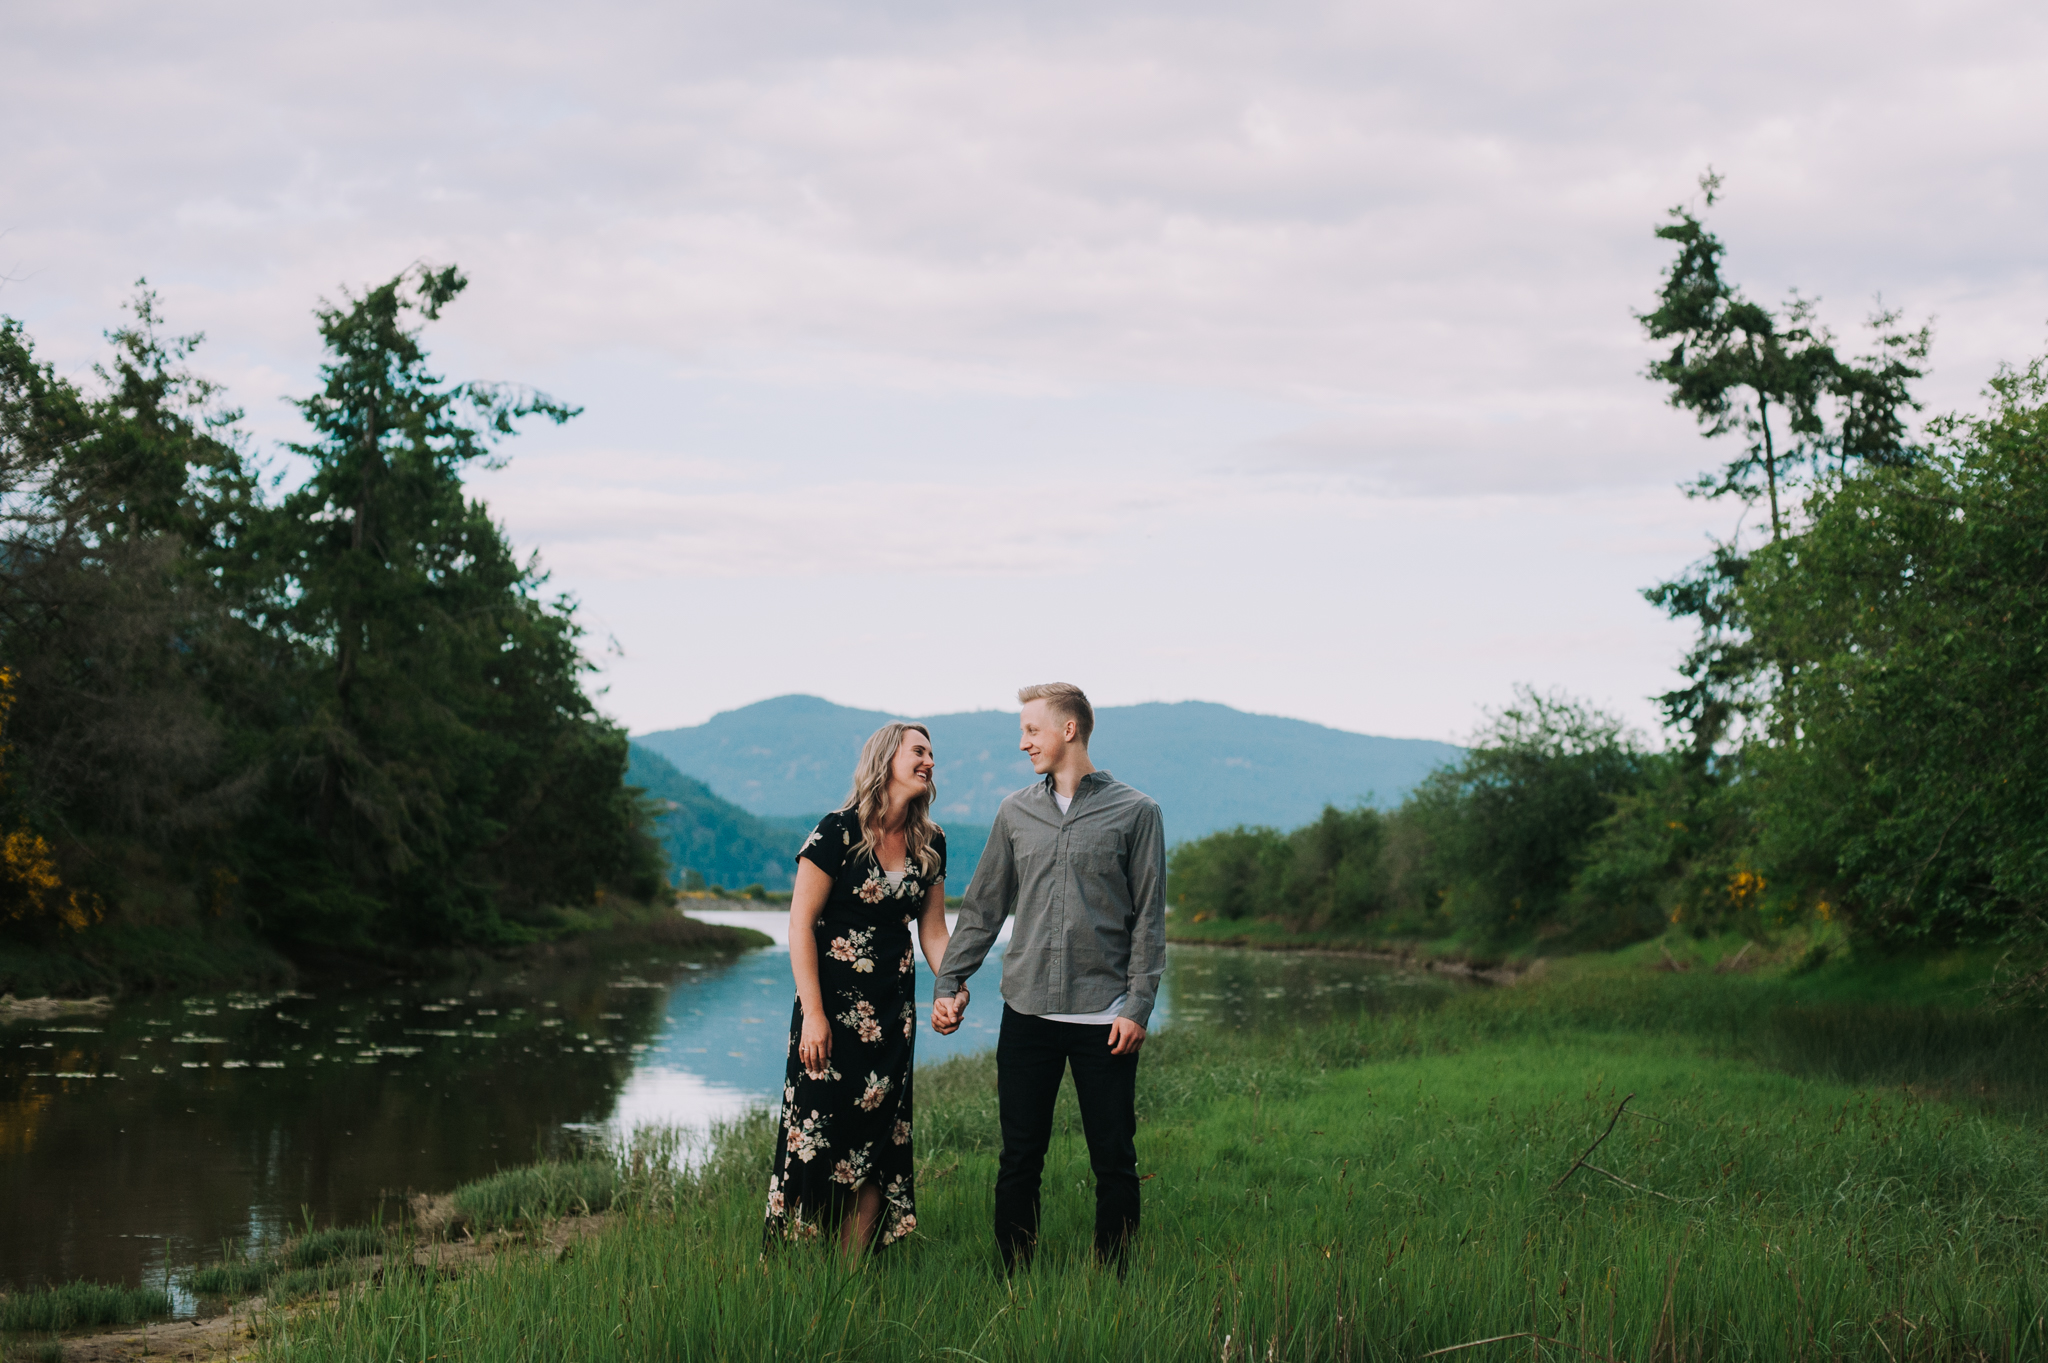 Leah+Rylan May2019_2.jpg